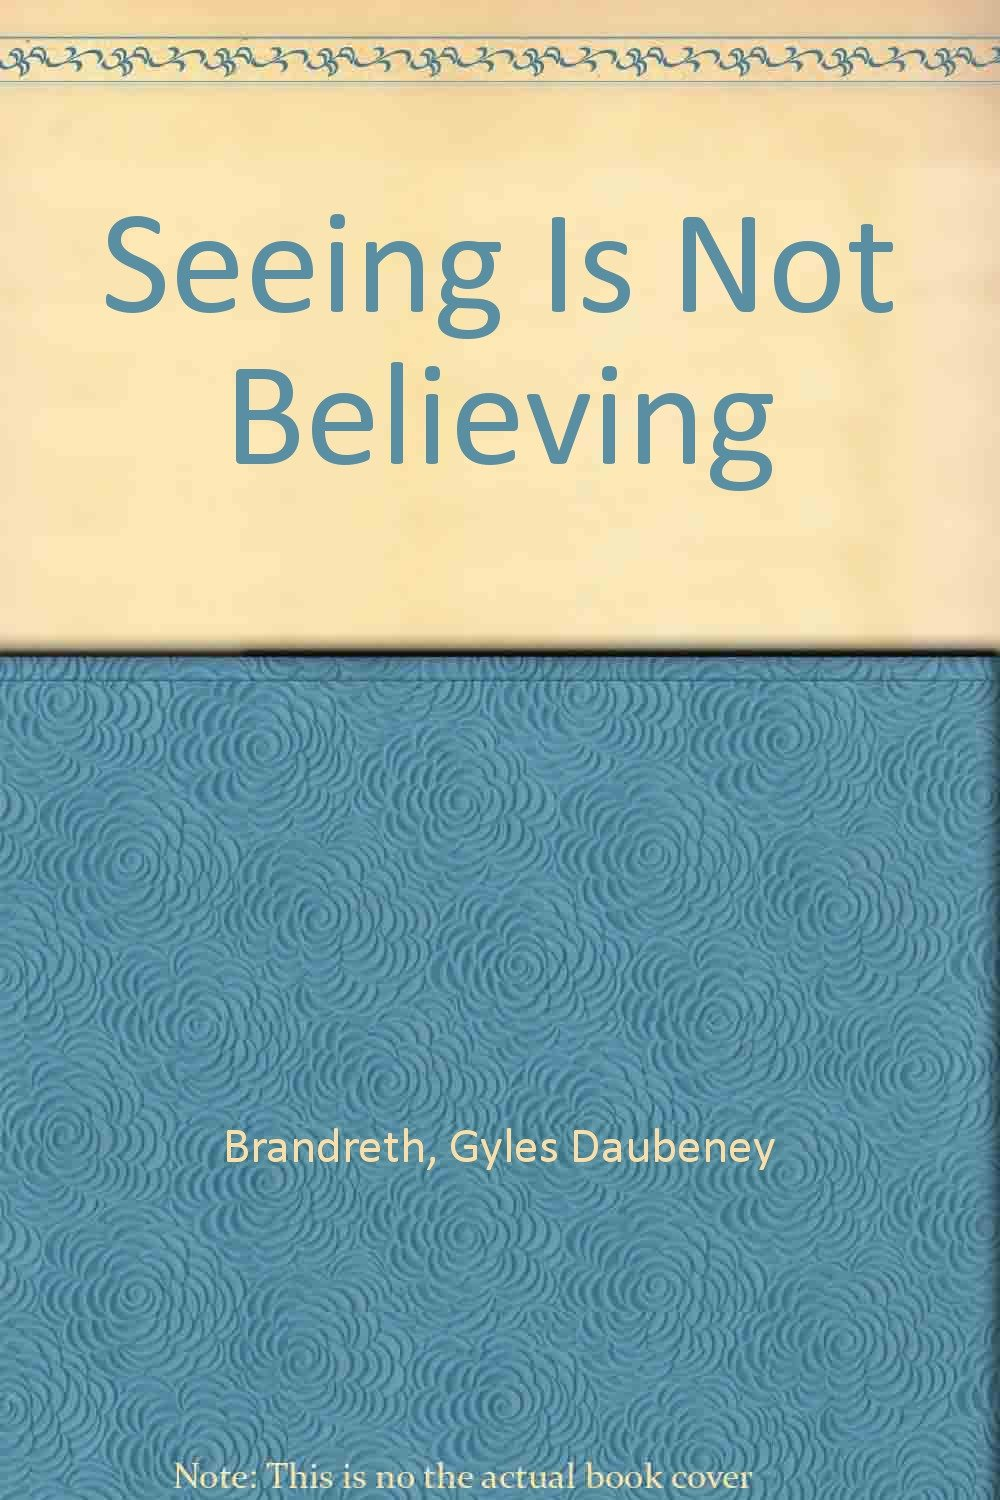 Seeing Is Not Believing >> Seeing Is Not Believing Gyles Daubeney Brandreth 9780806946146